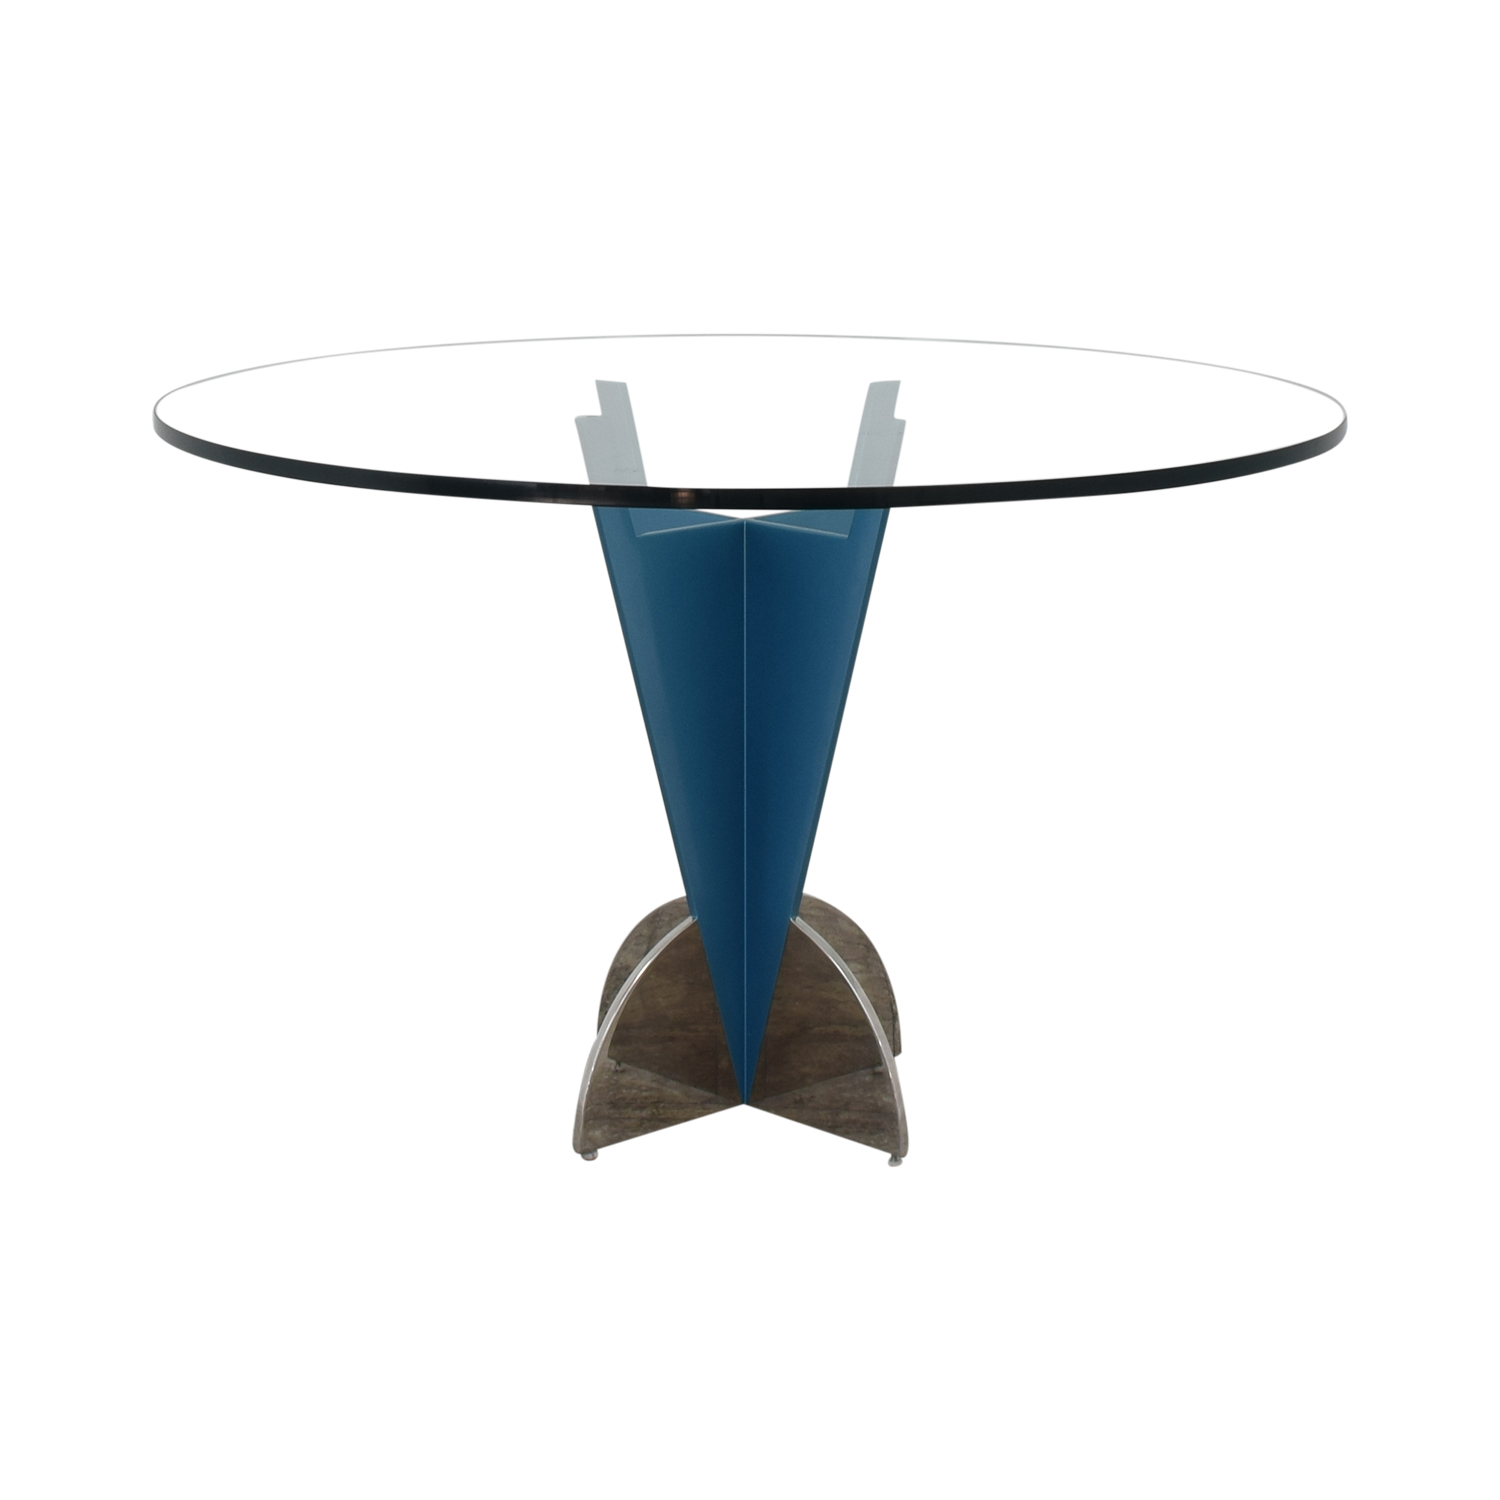 Fasem Fasem Glass Dining Table nj